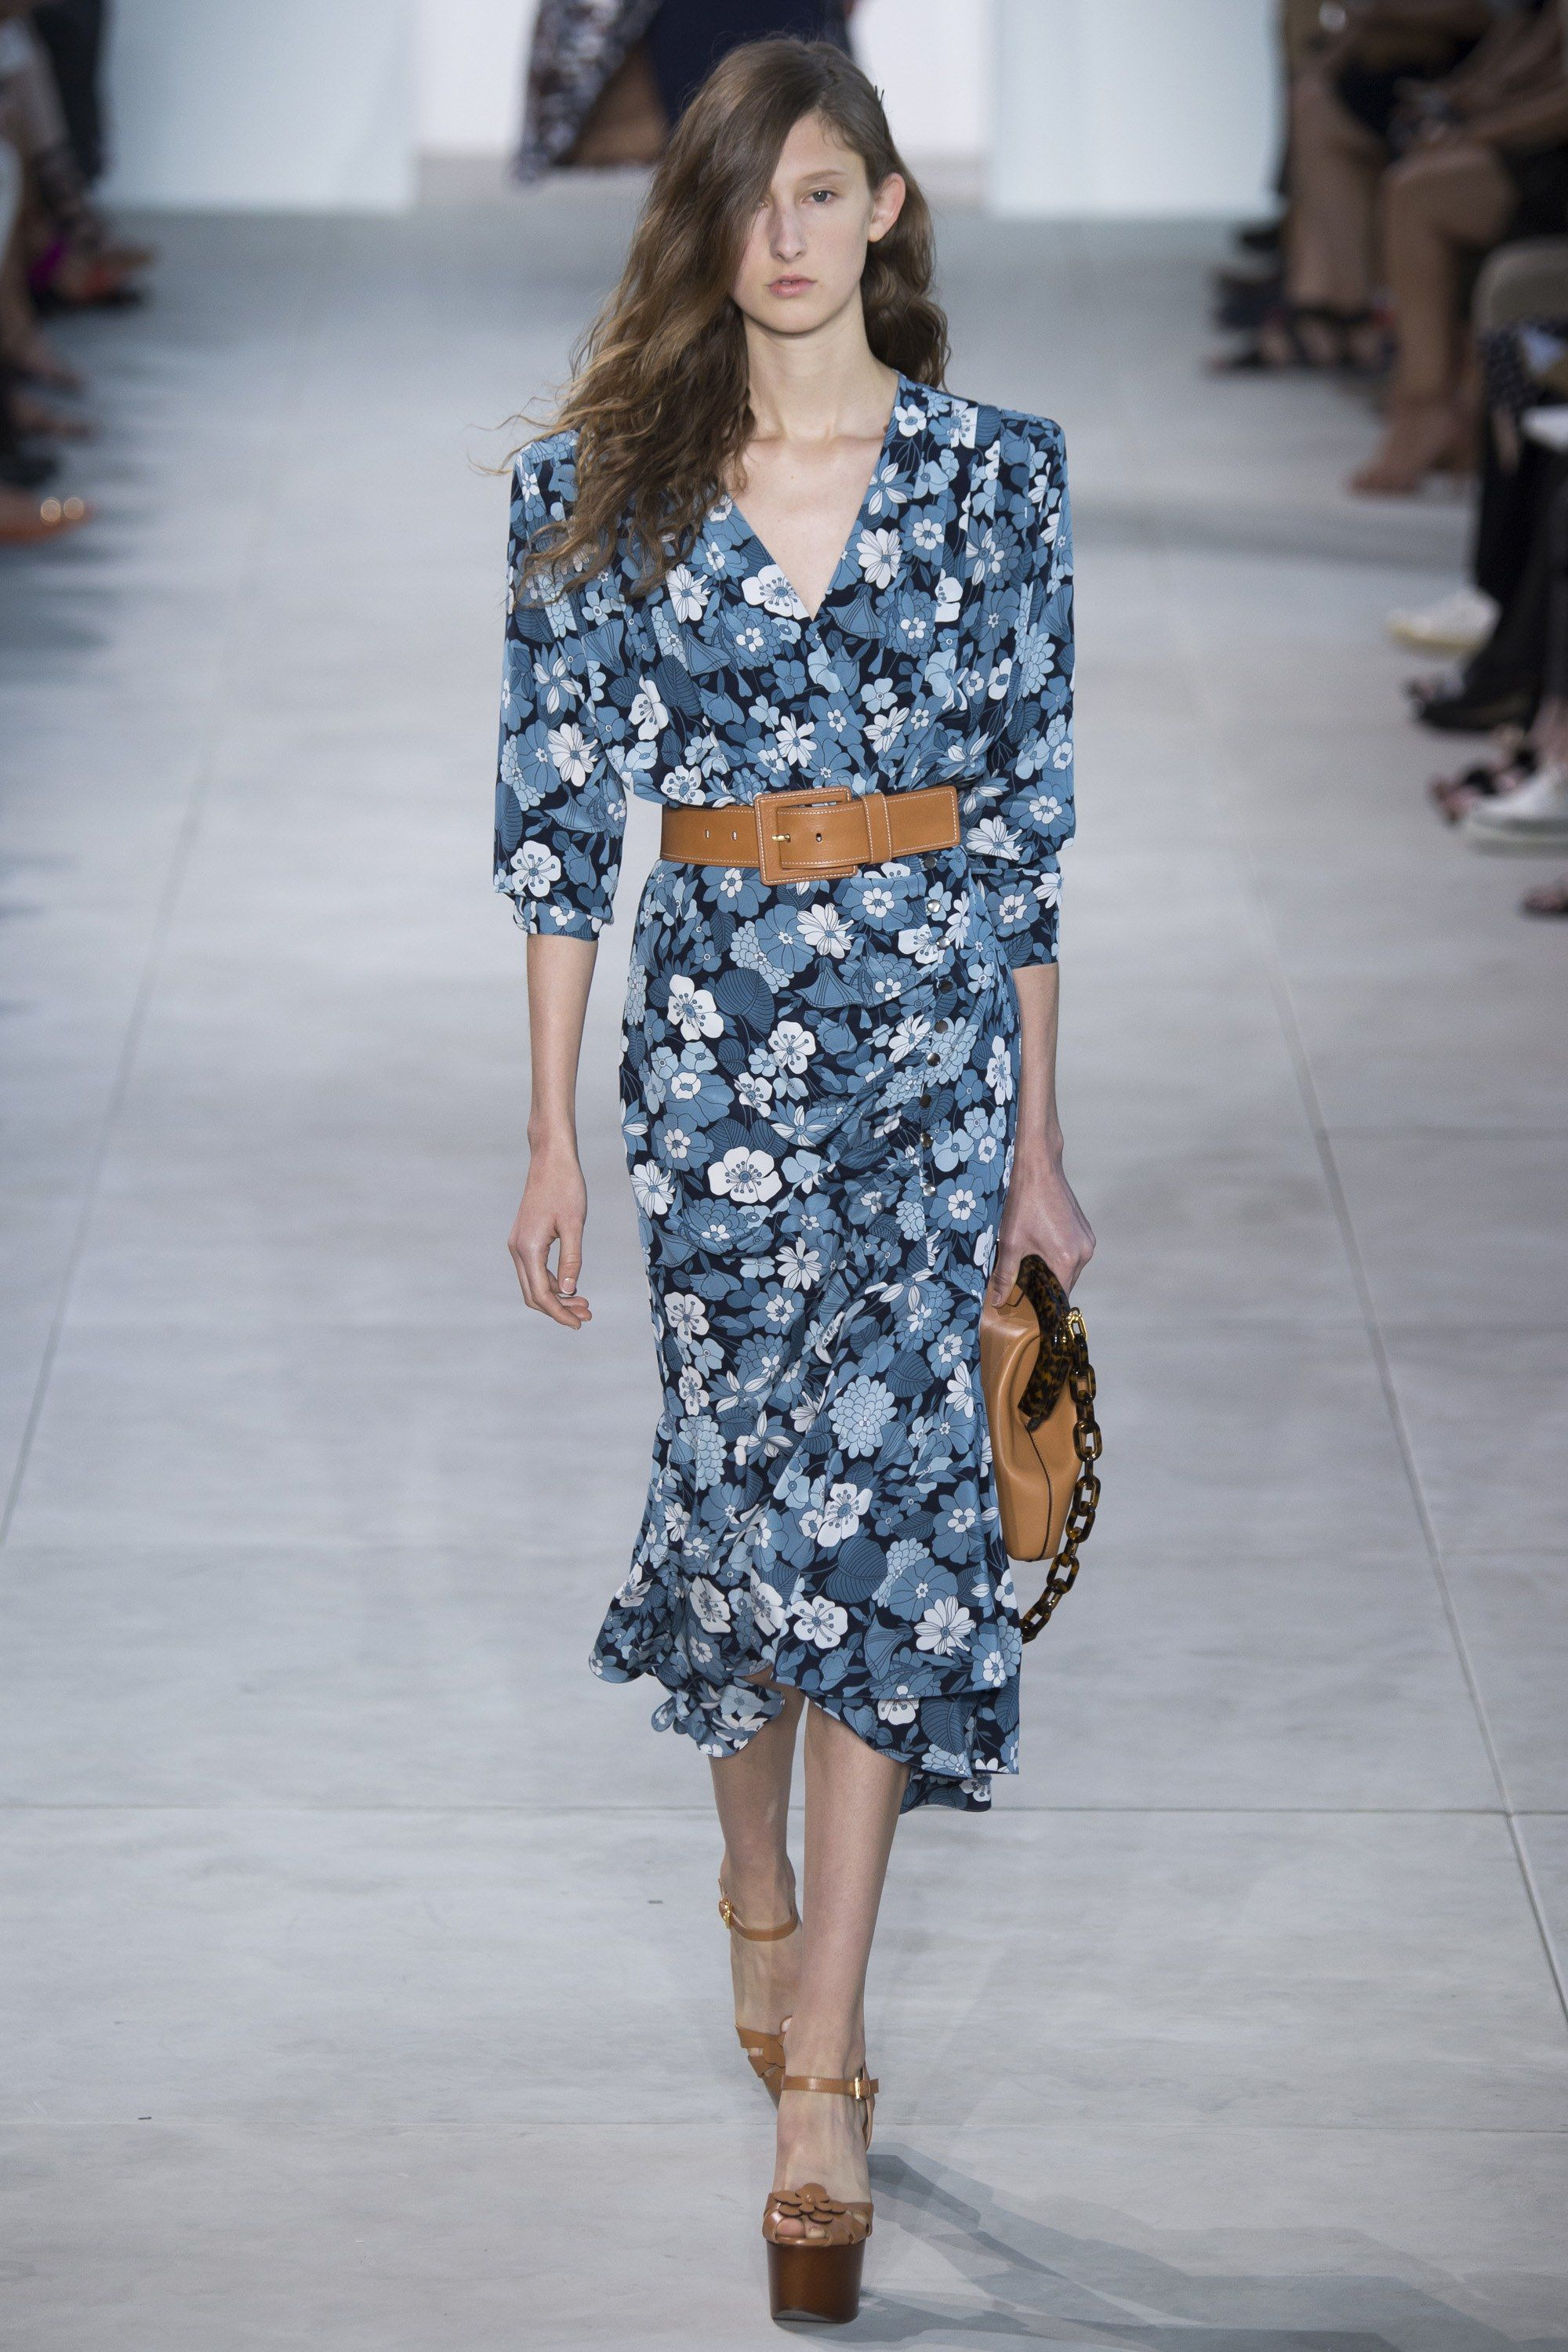 766edaa032b5 Michael Kors Collection Spring 2017 Ready-to-Wear Fashion Show - Jay Wright